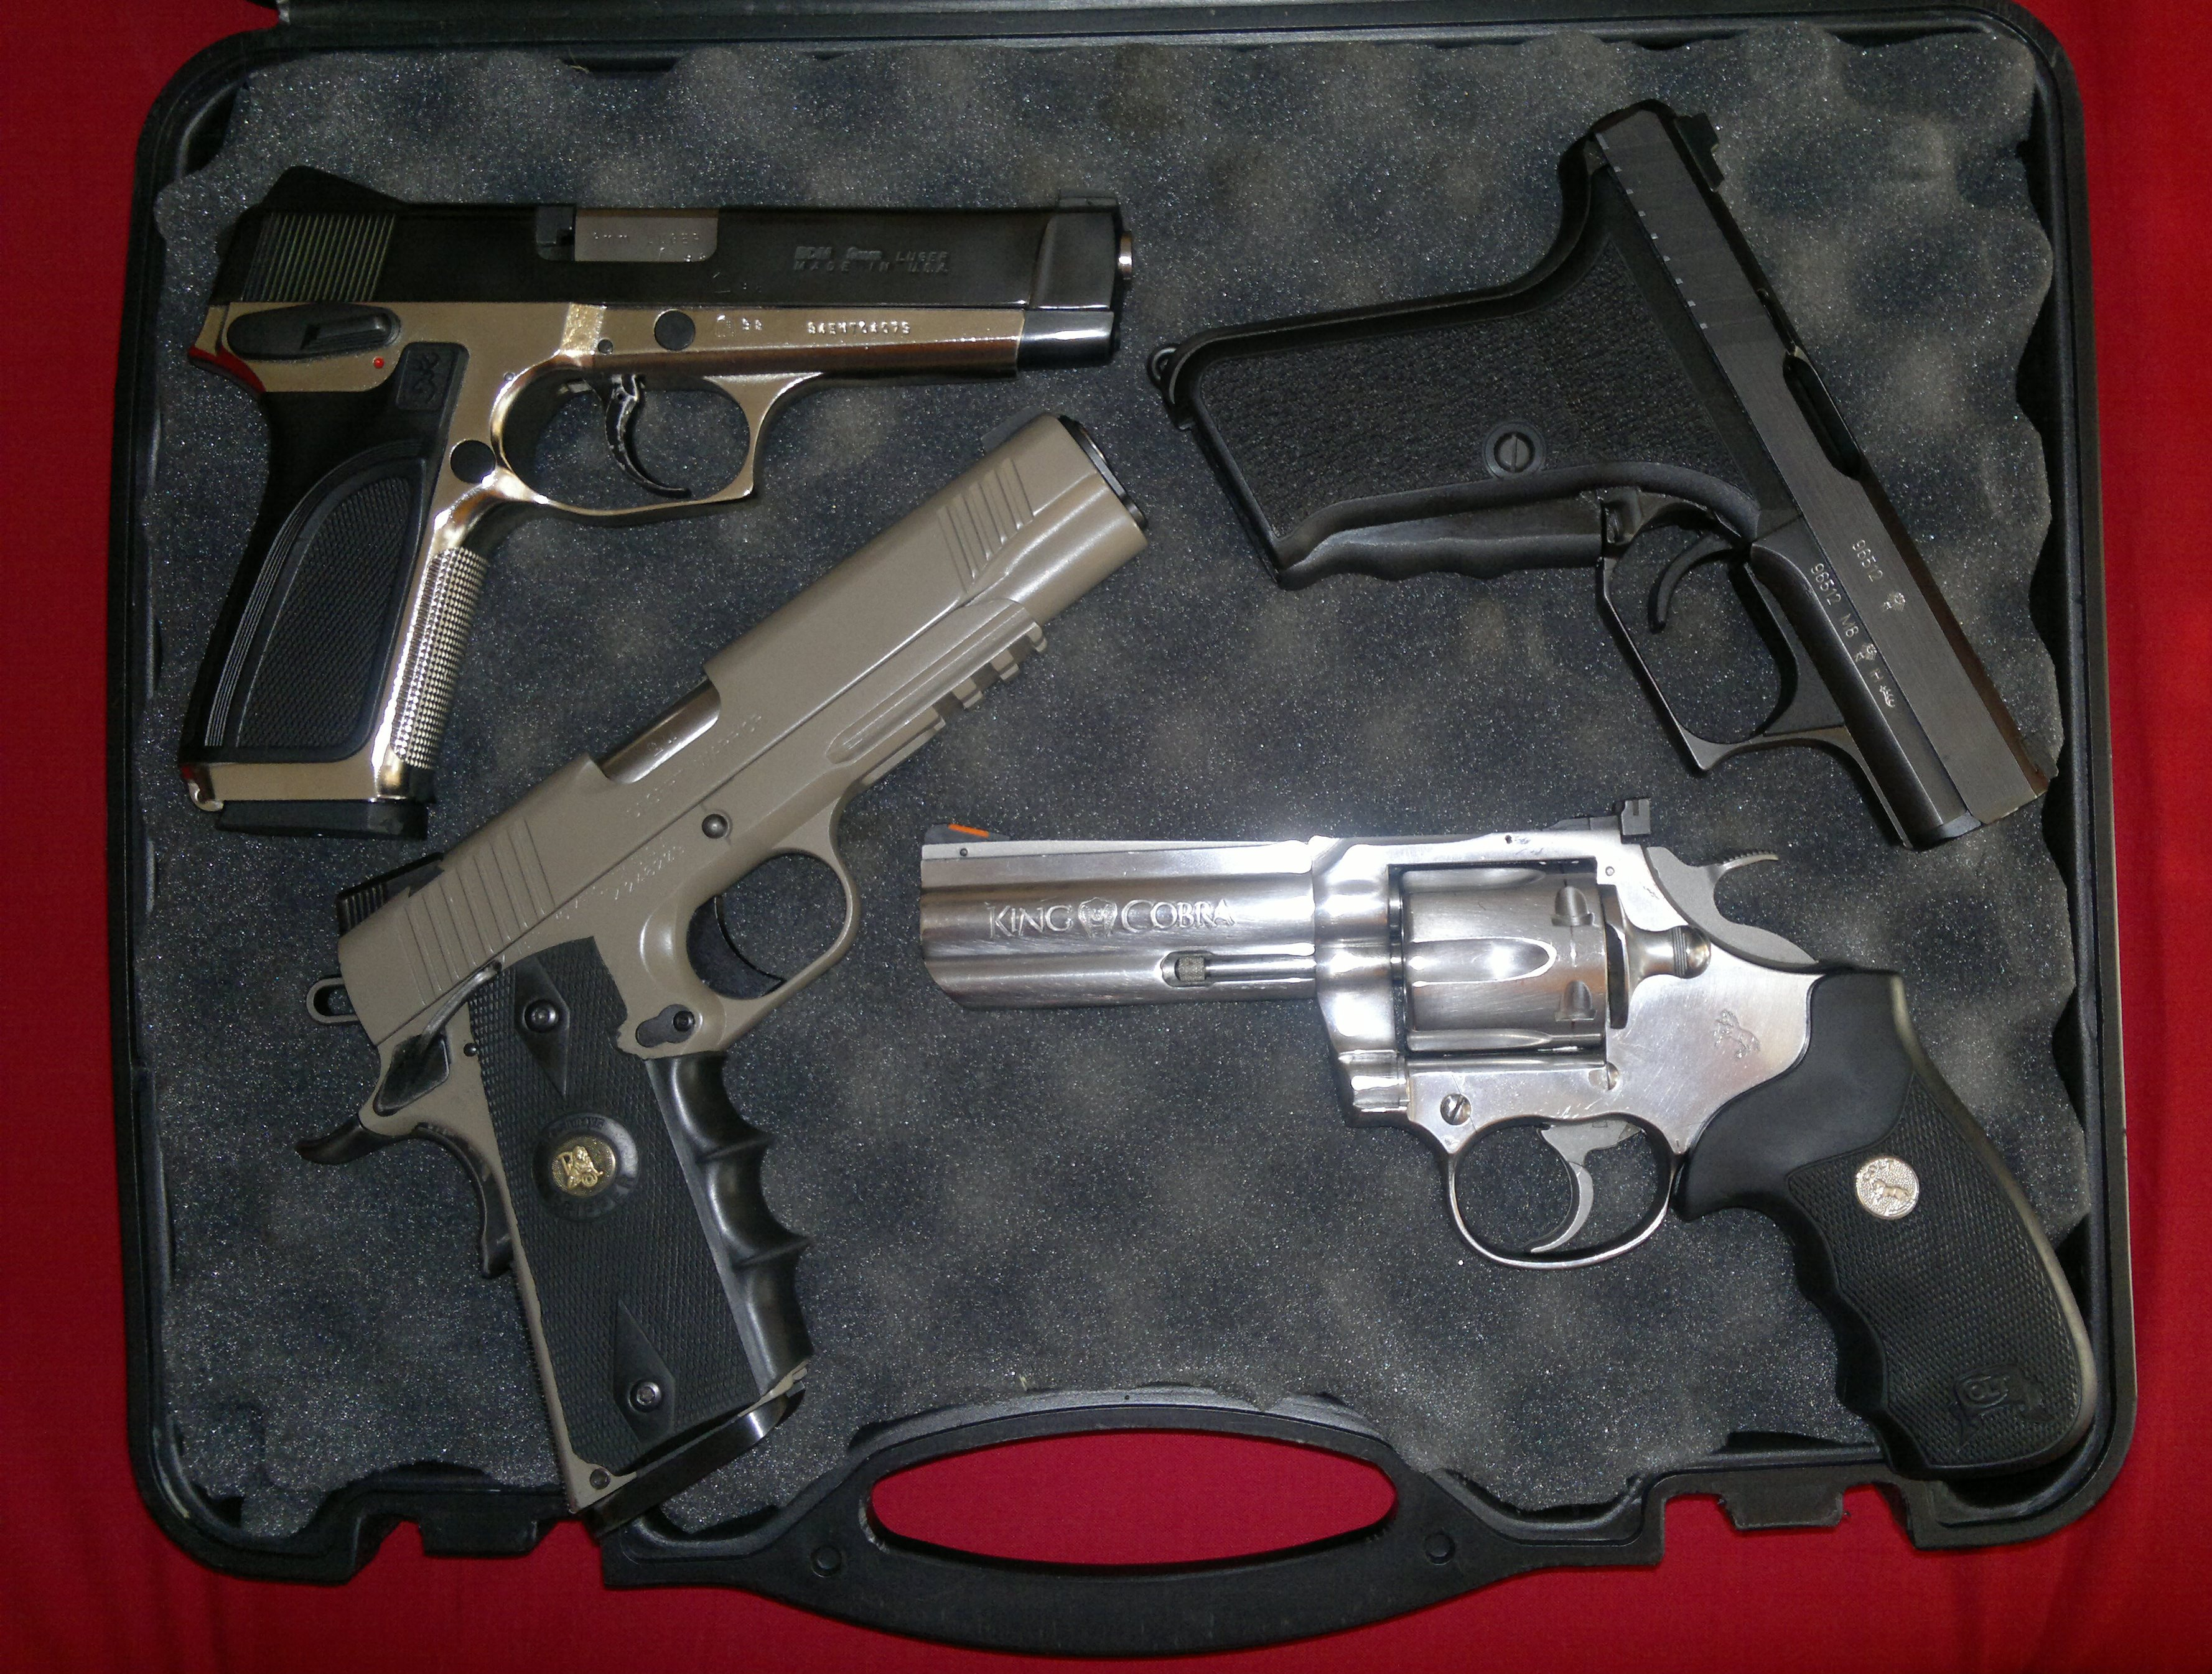 Browning BDM, HK P7M8, Colt King Cobra, Kimber Desert Warrior